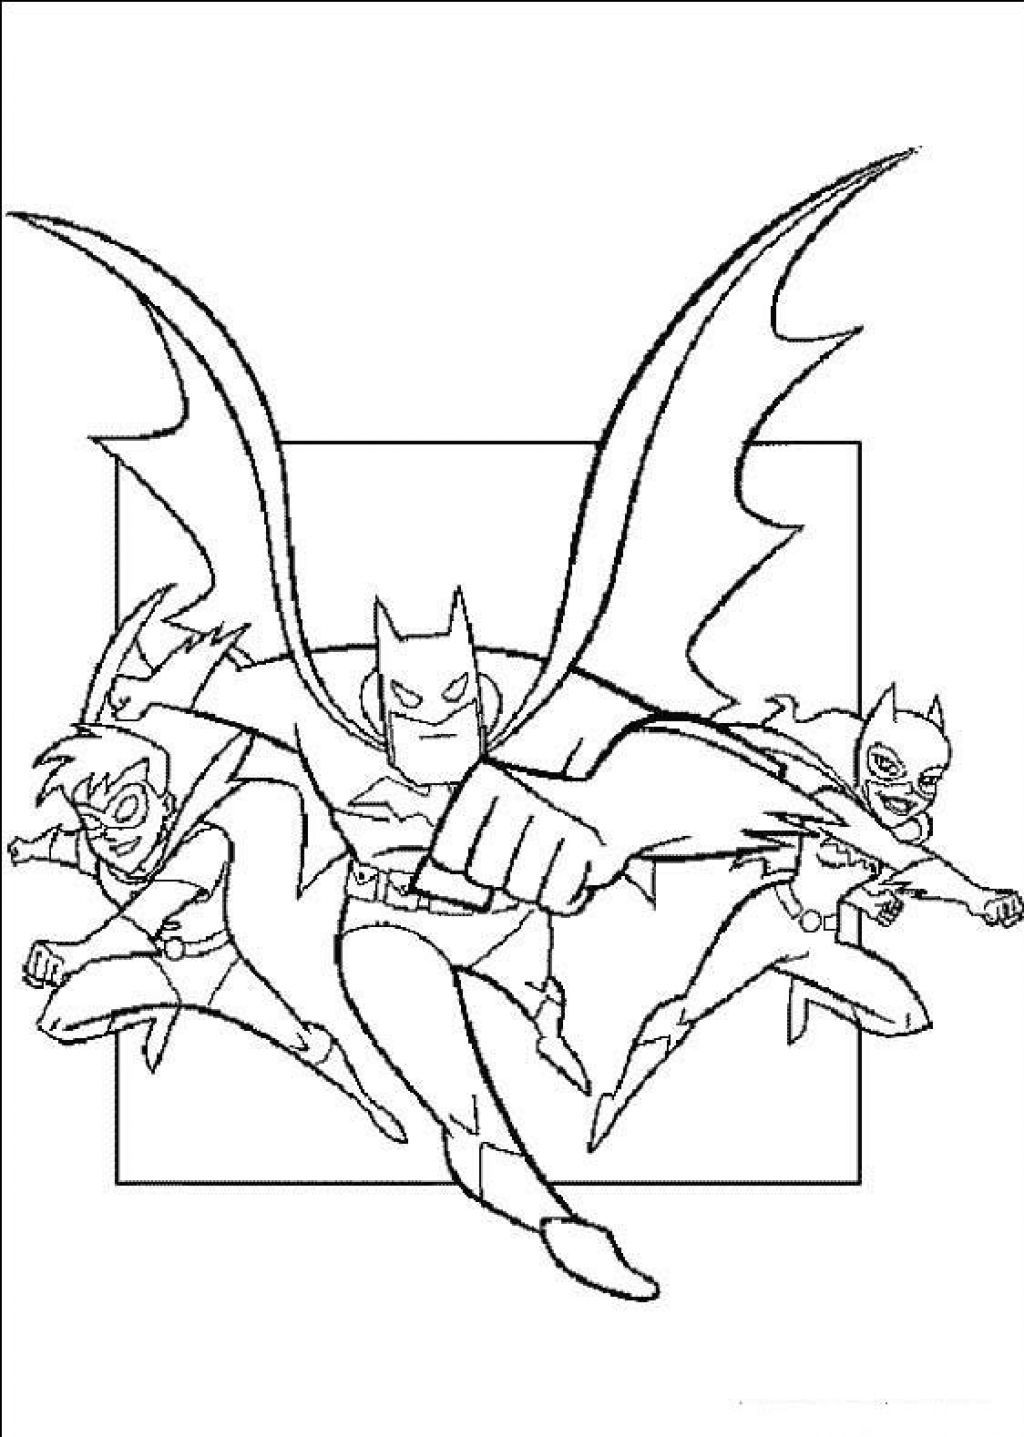 Free Printable Batman Coloring Pages For Kids | Pinterest